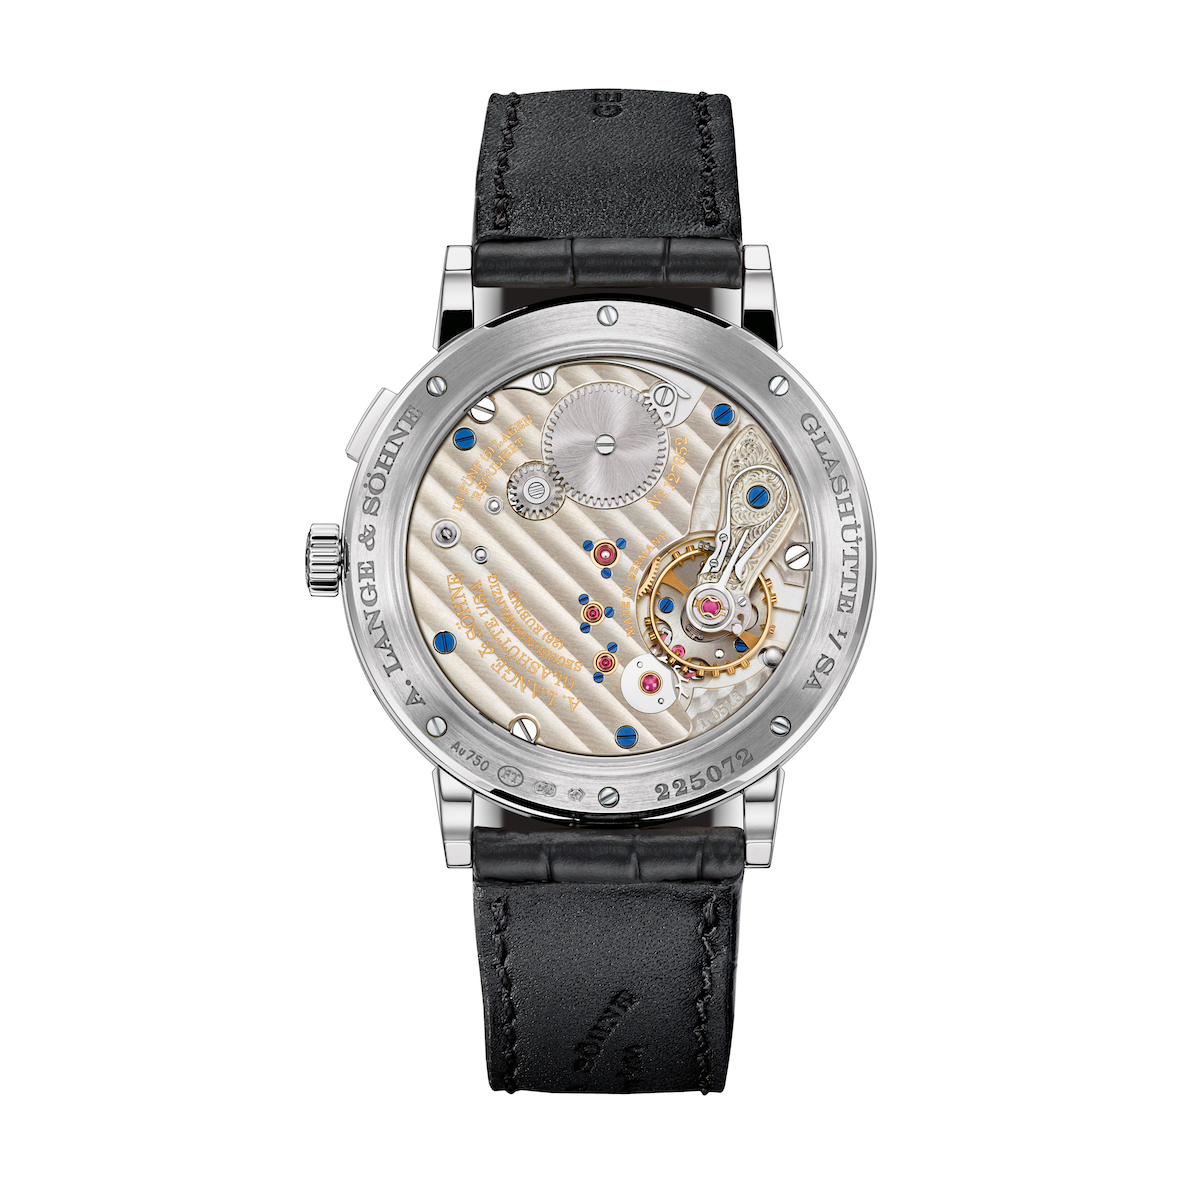 A. Lange Sohne 238.026 1815 Annual Calendar Mens Watch in white Gold case back